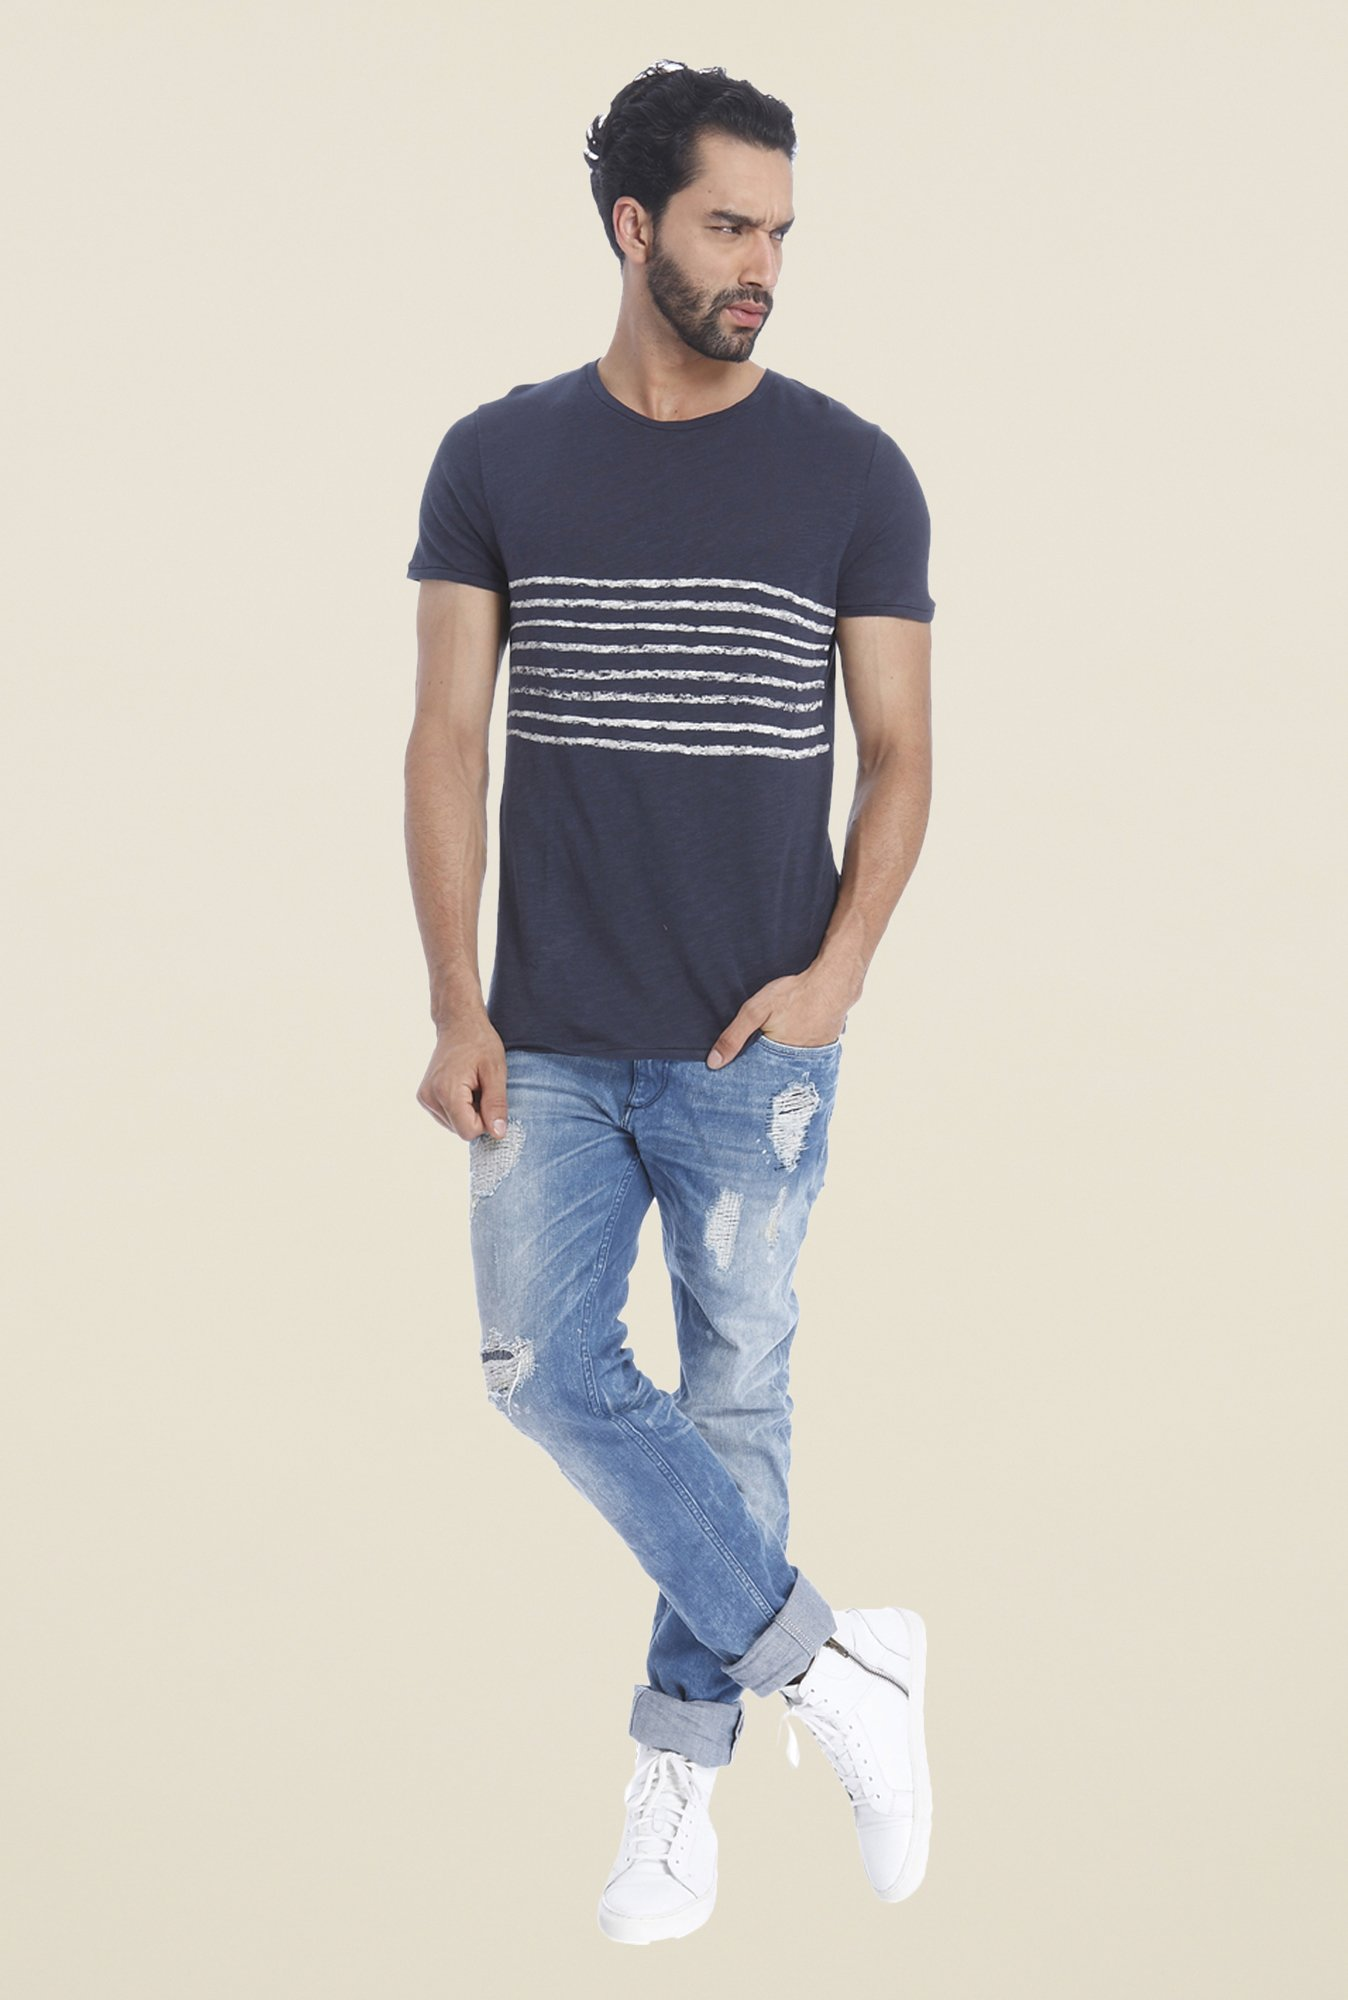 Jack & Jones Navy Textured T Shirt